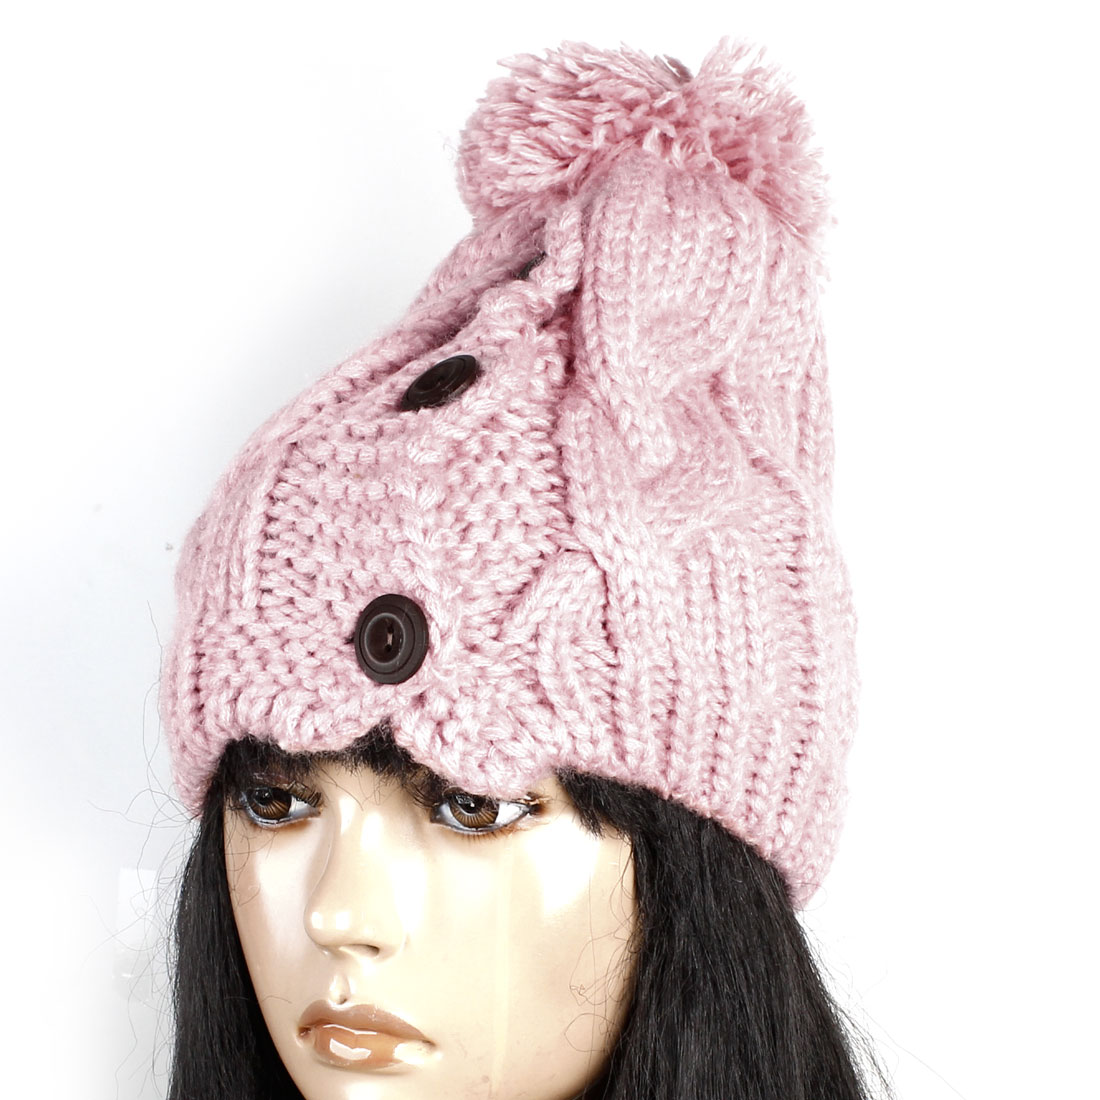 Woman Pale Pink Pom Pom Top 3 Brown Buttons Accent Knitted Warm Hat Cap